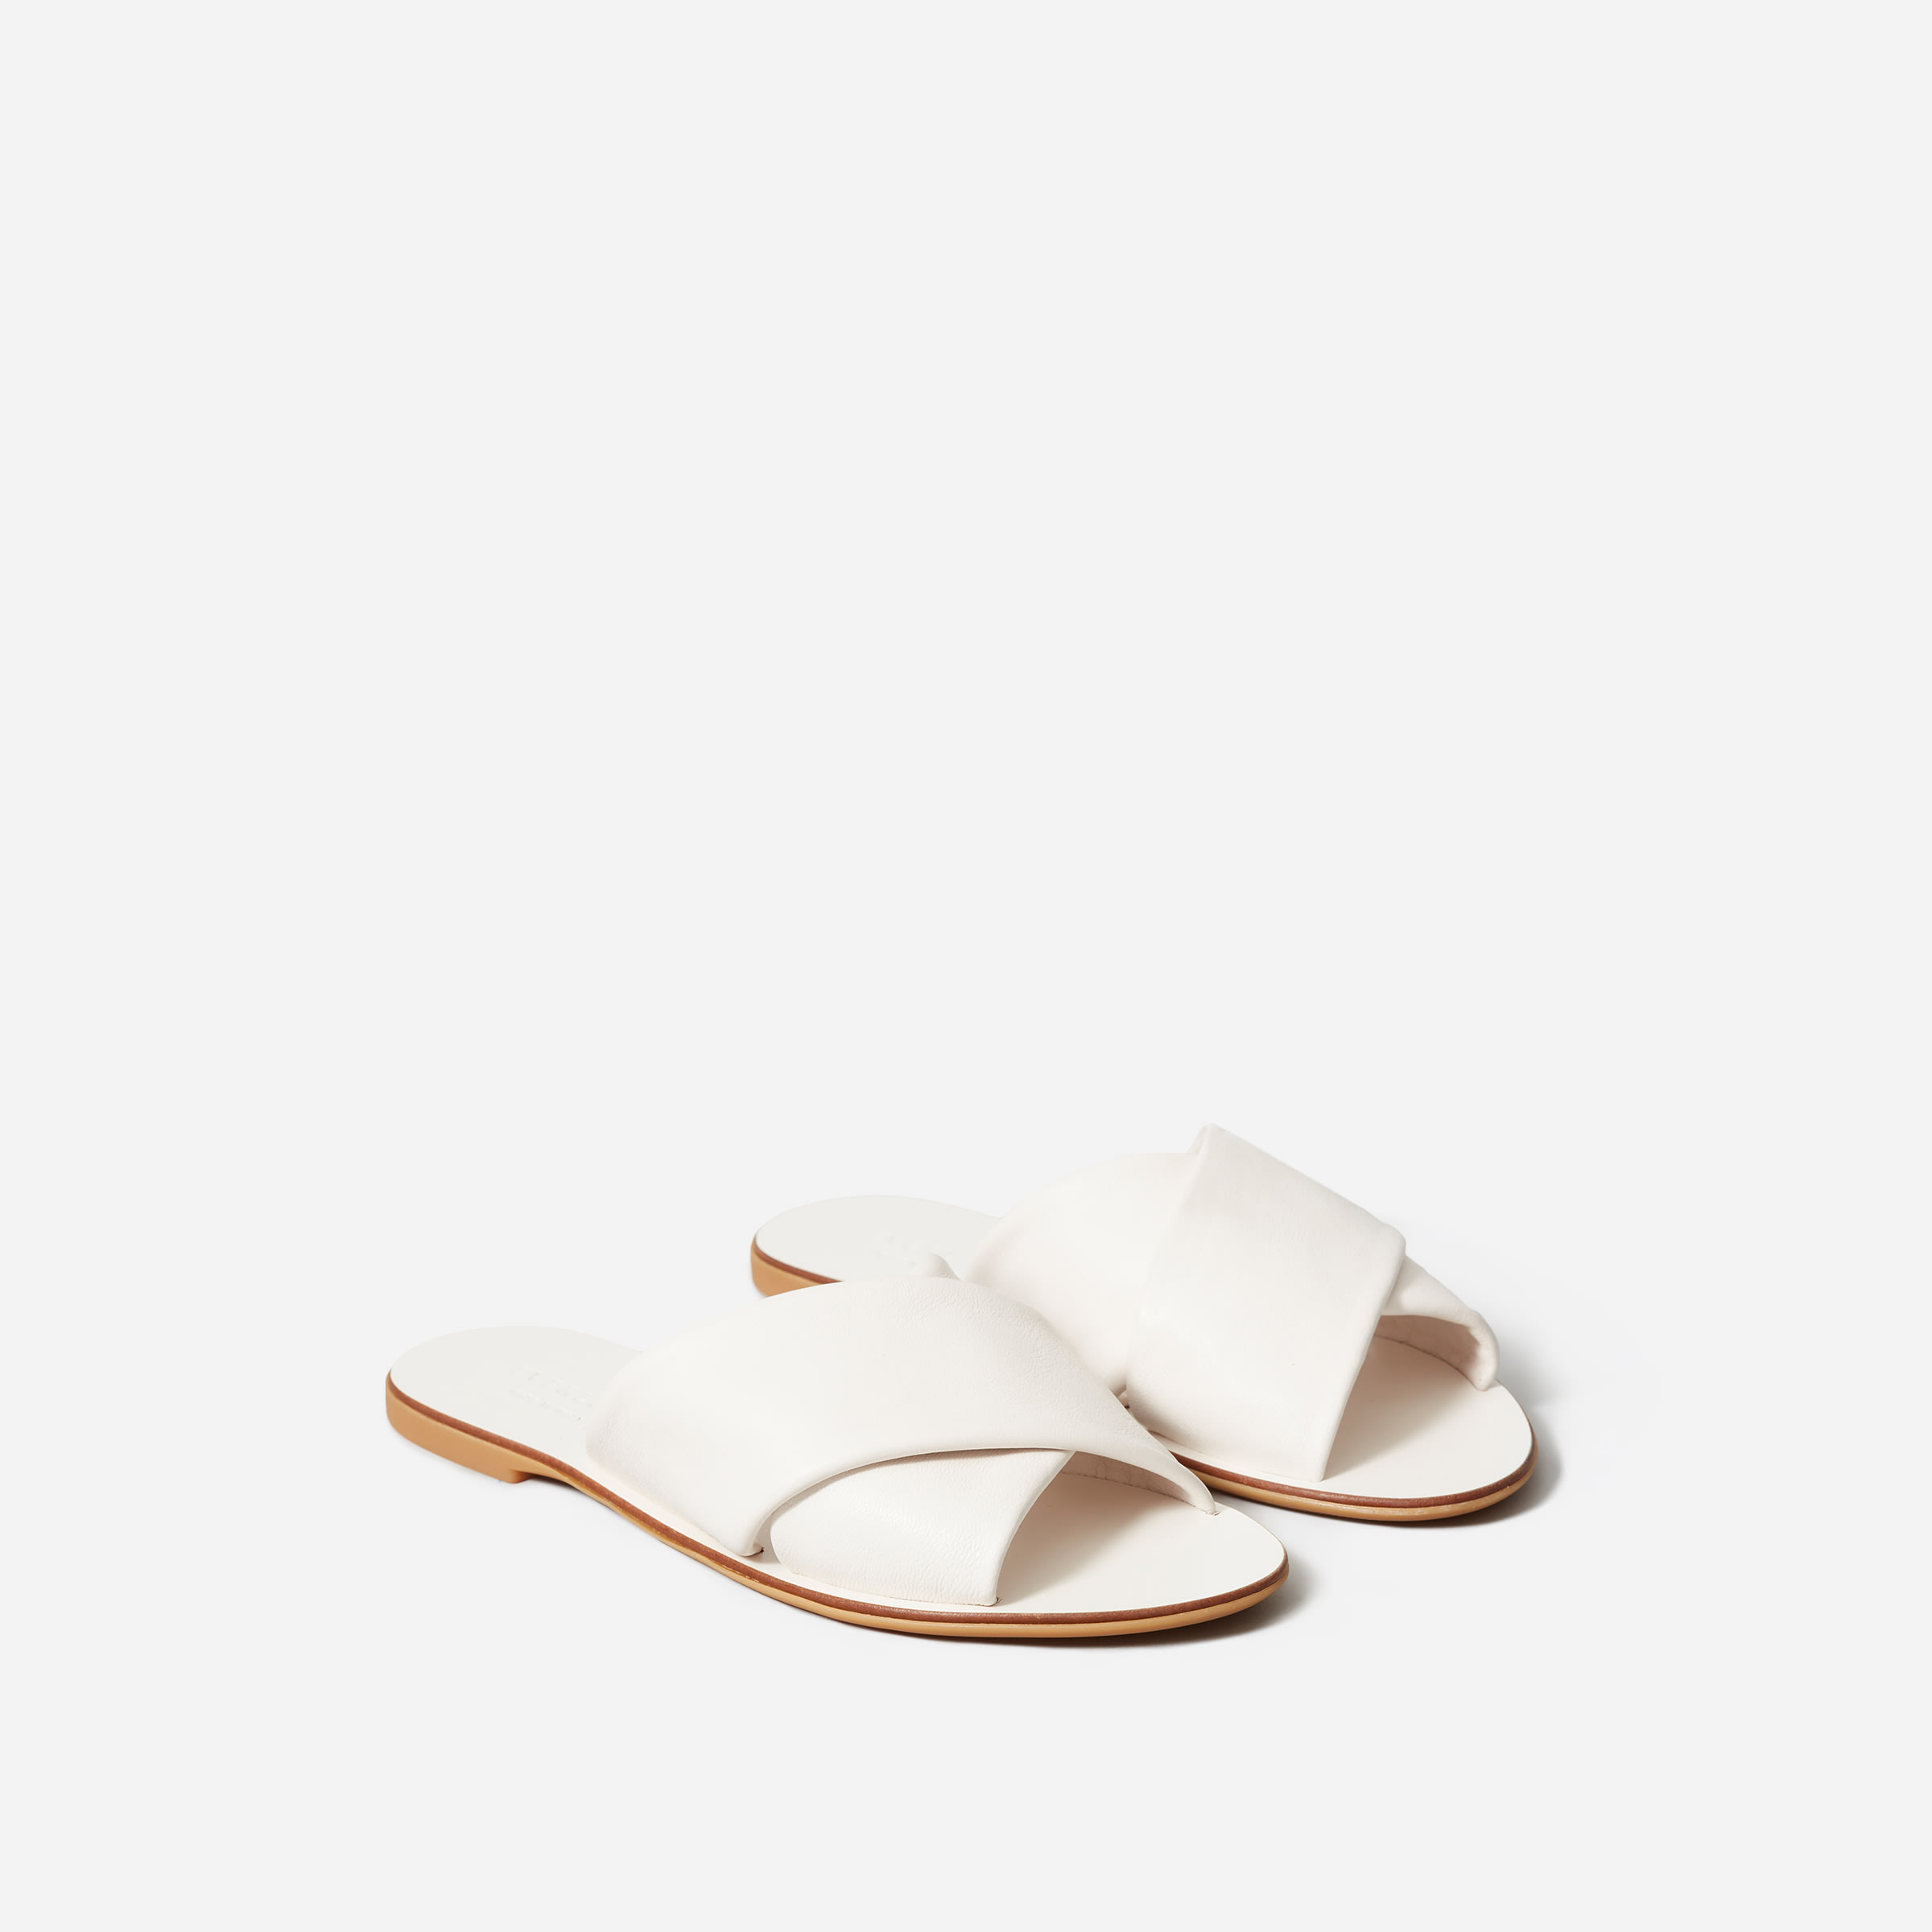 Everlane - The Day Crossover Sandal | $88Simple. Chic. Perfect.